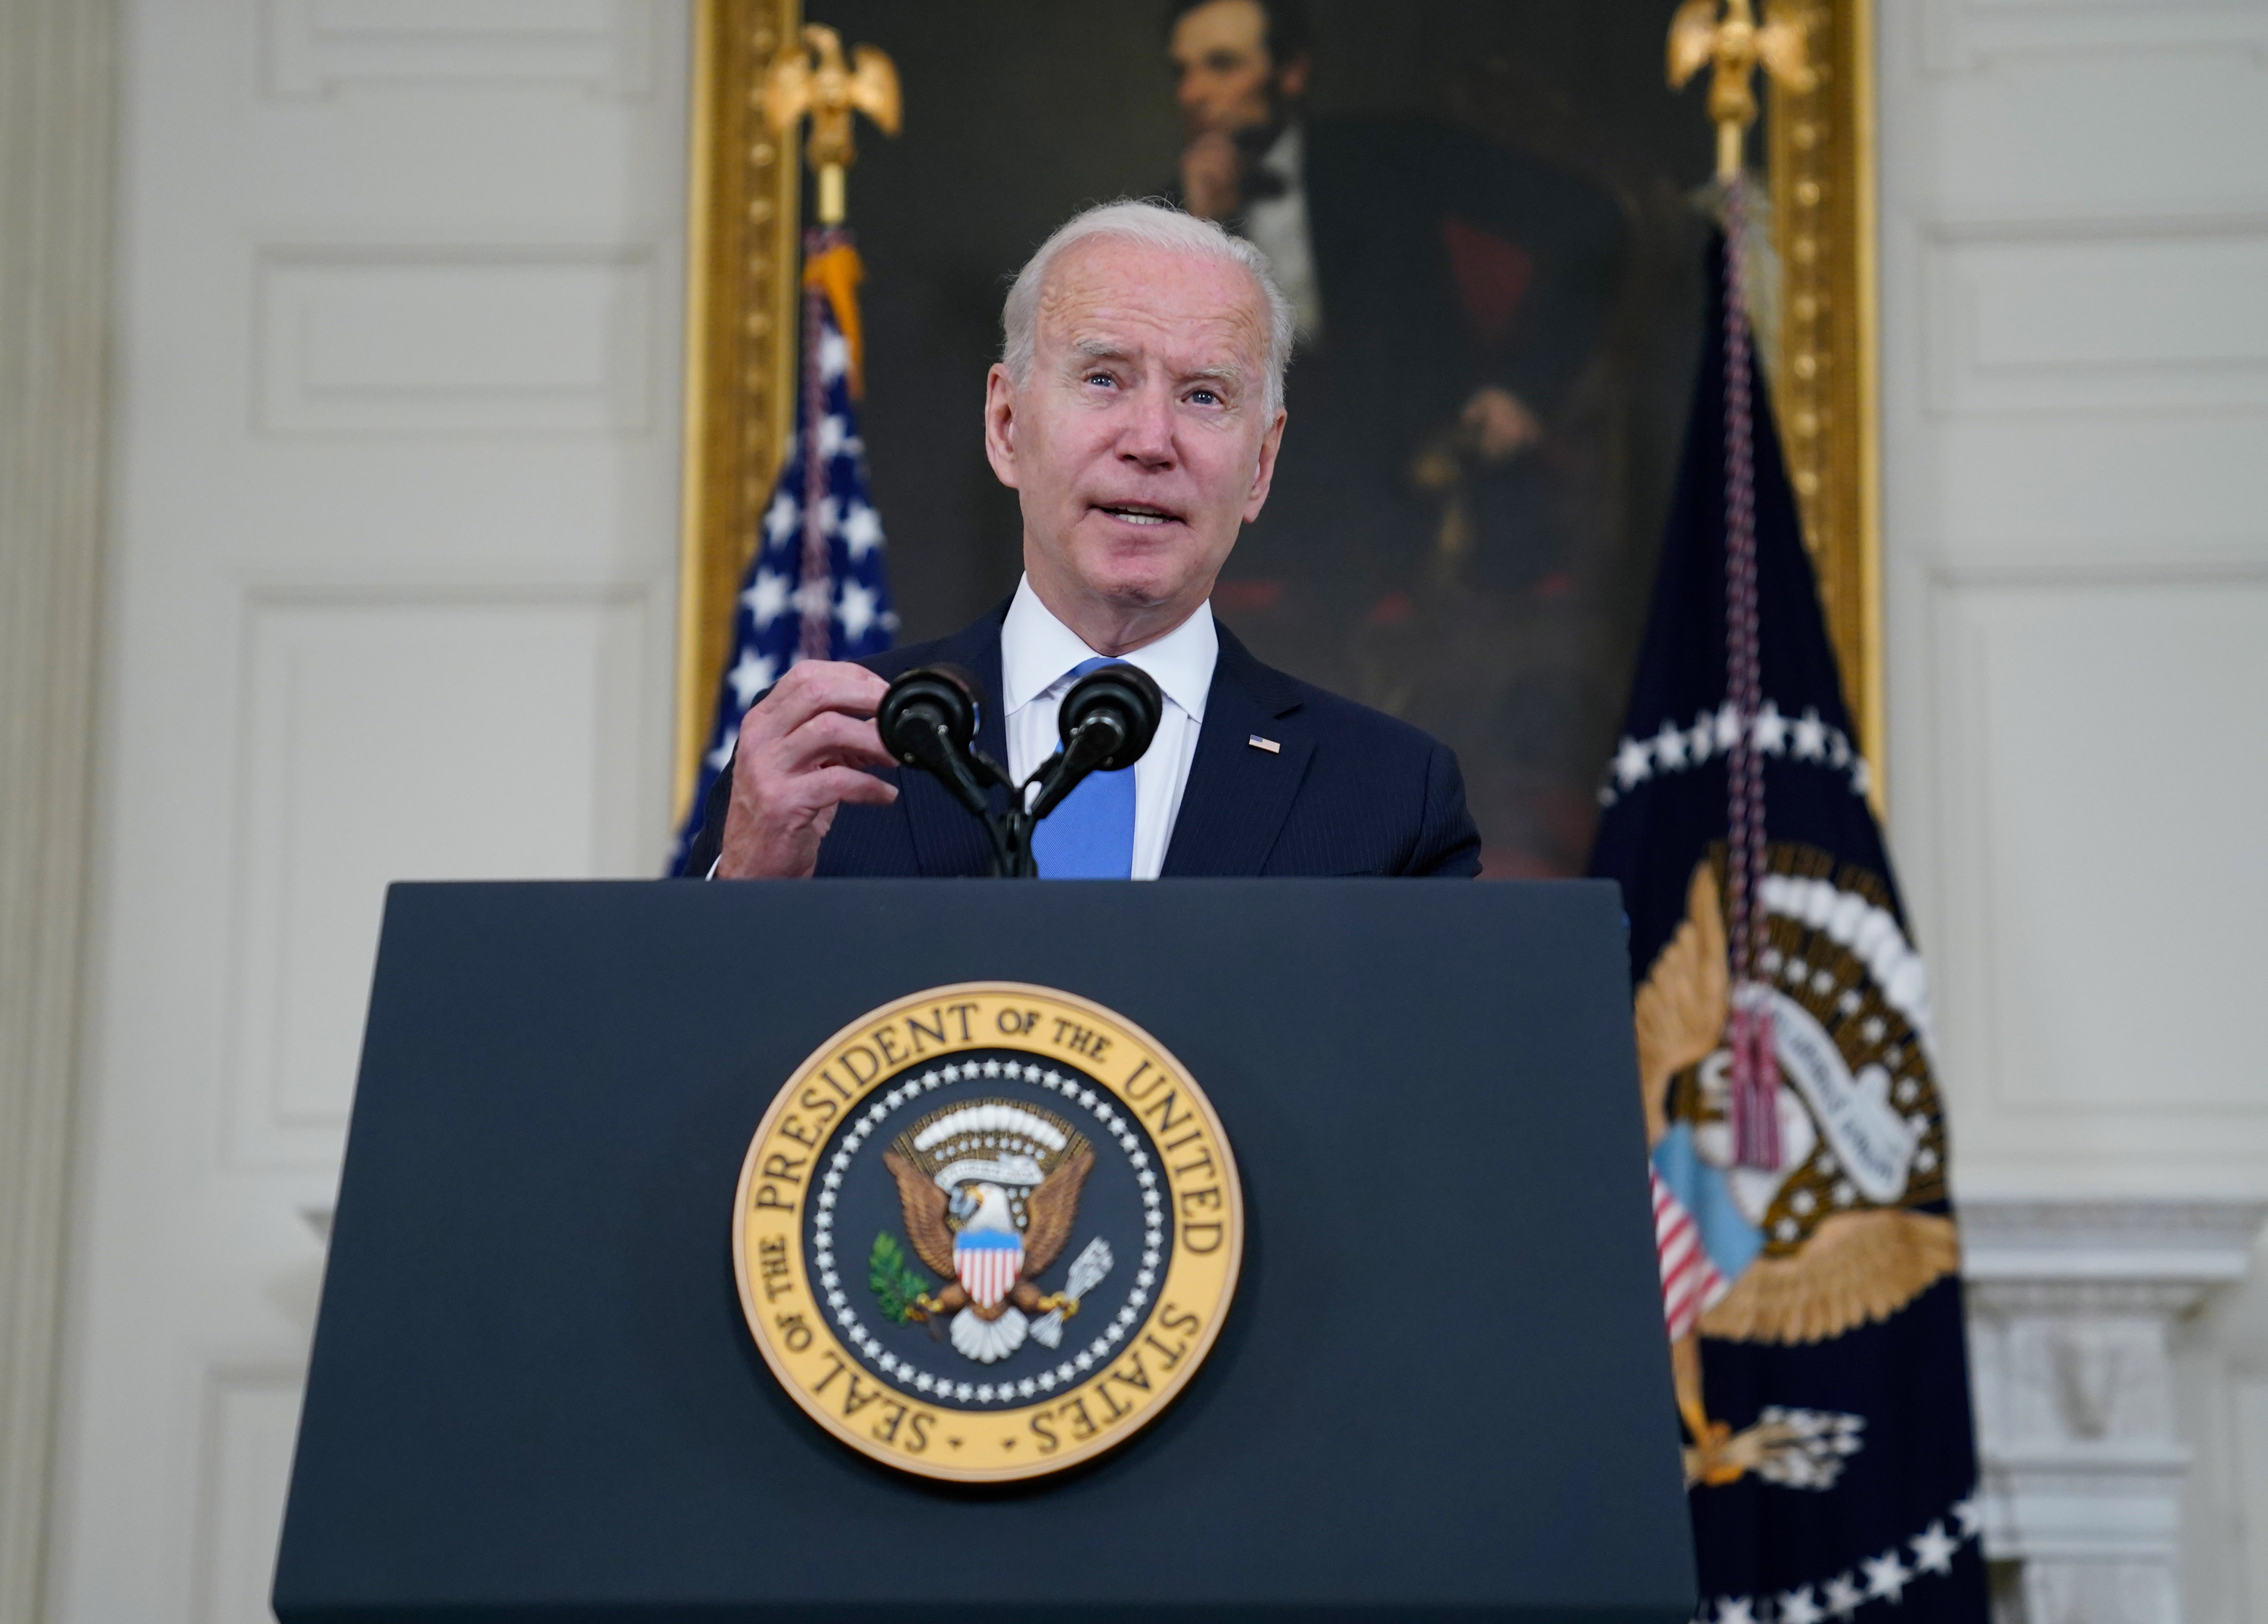 Biden defends proposed tax hikes as helping 'the standard of living of people I grew up with'